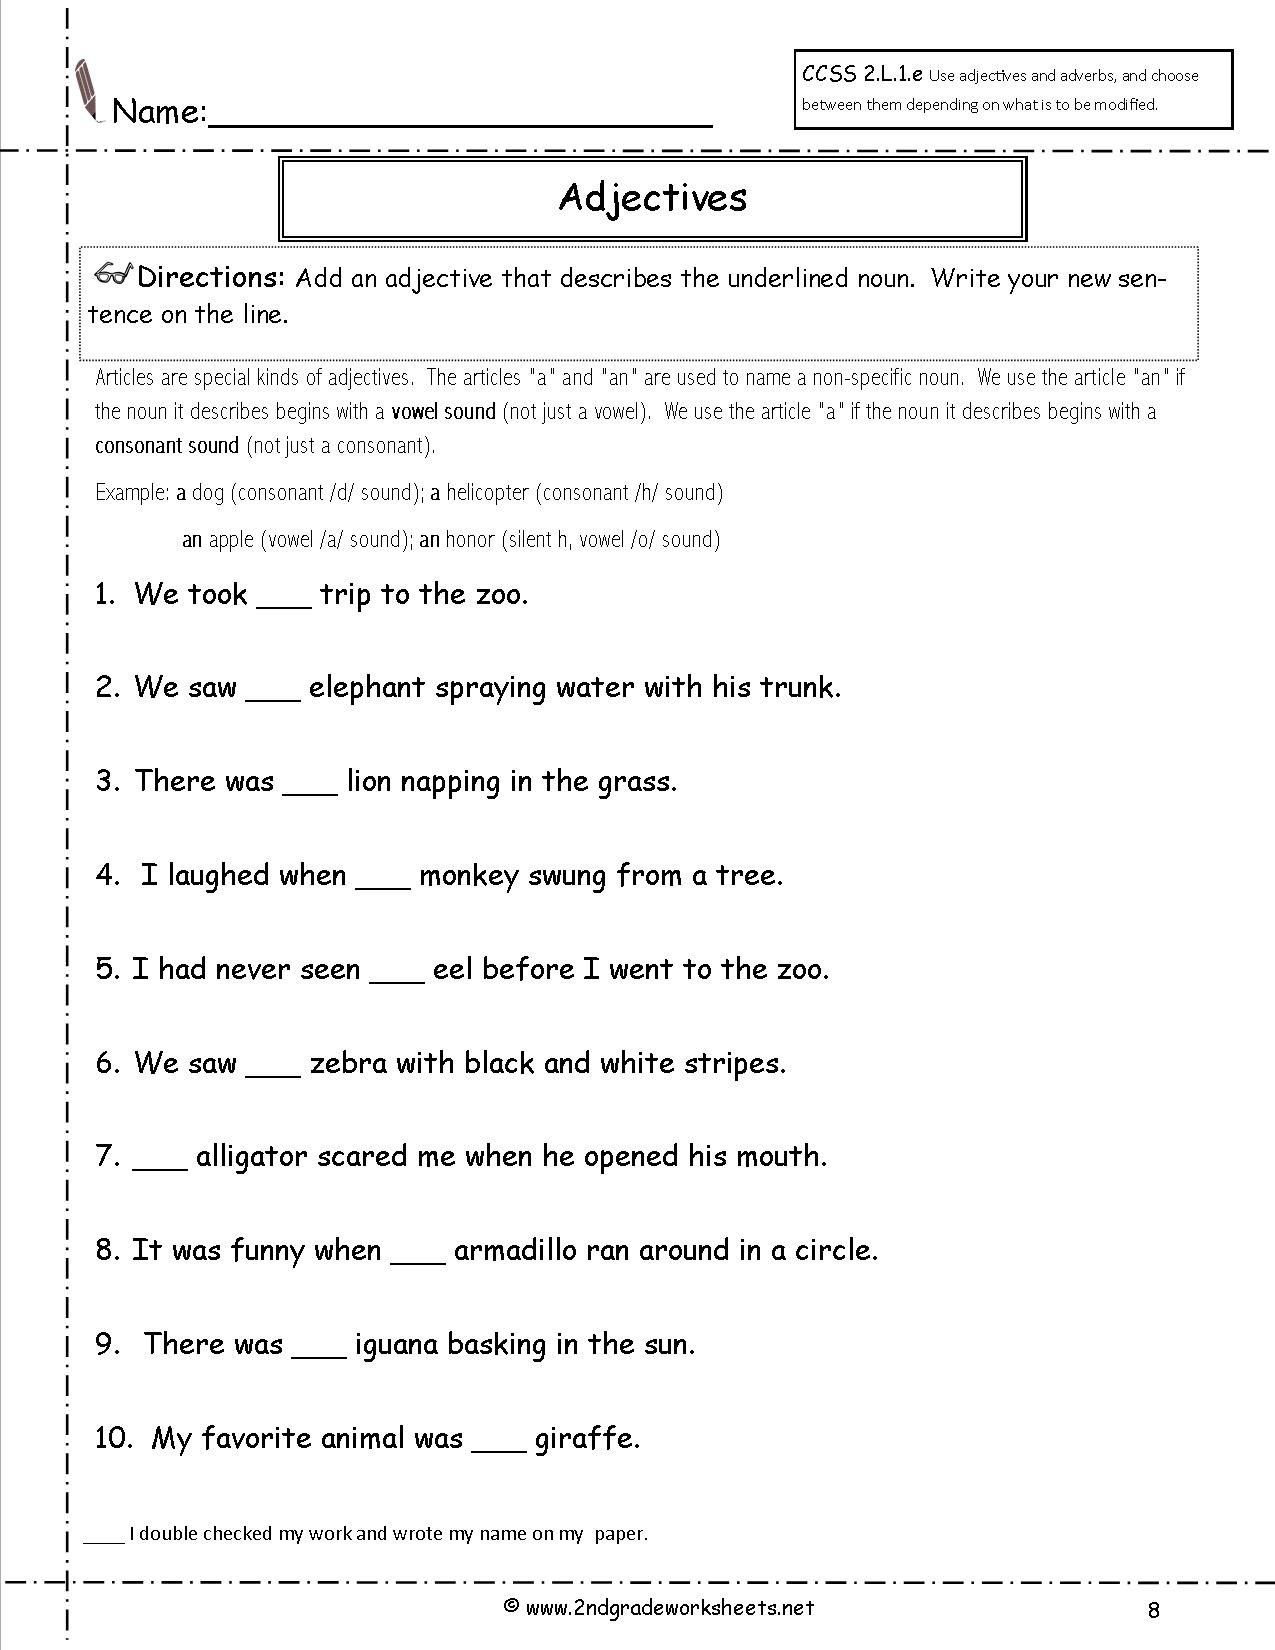 Free Language/grammar Worksheets And Printouts | Second Grade Printable Worksheets